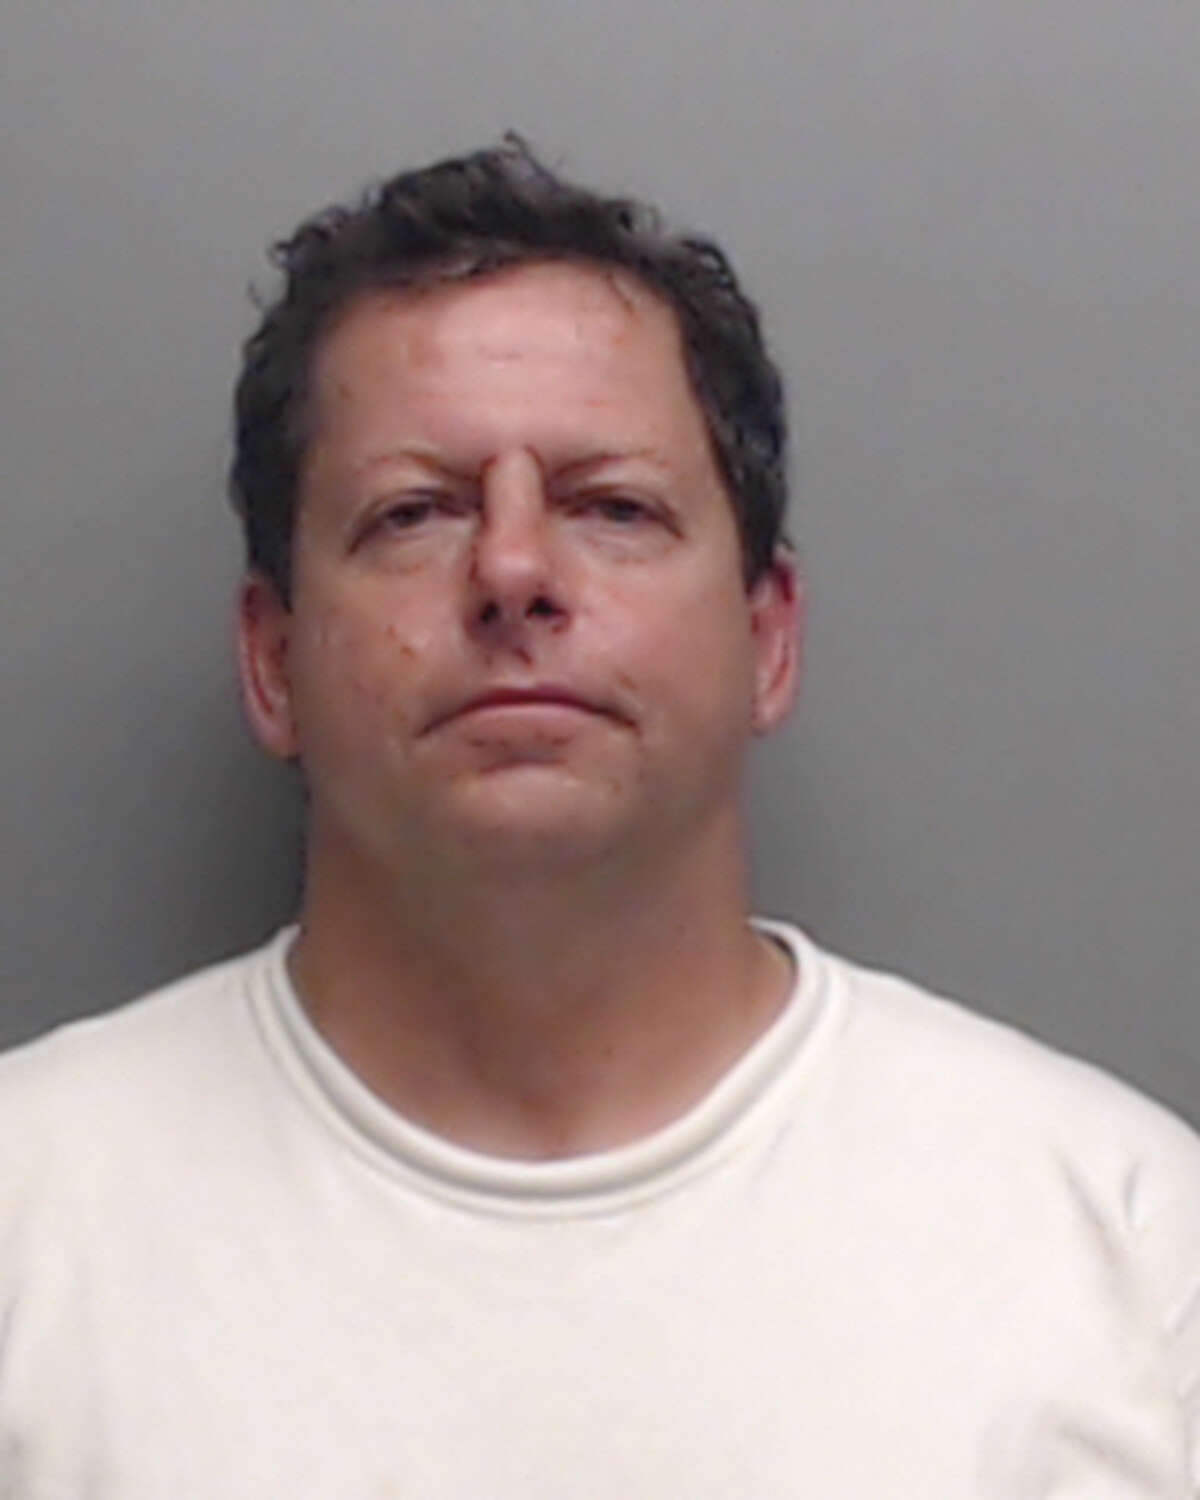 David Scott Glickler, a county court-at-law judge in Hays County, was arrested Monday and charged with driving while intoxicated, a Class B misdemeanor punishable by up to 180 days in jail and a $2,000 fine. Glicker has been released from Hays County Jail on a $3,000 bond, according to online jail records.